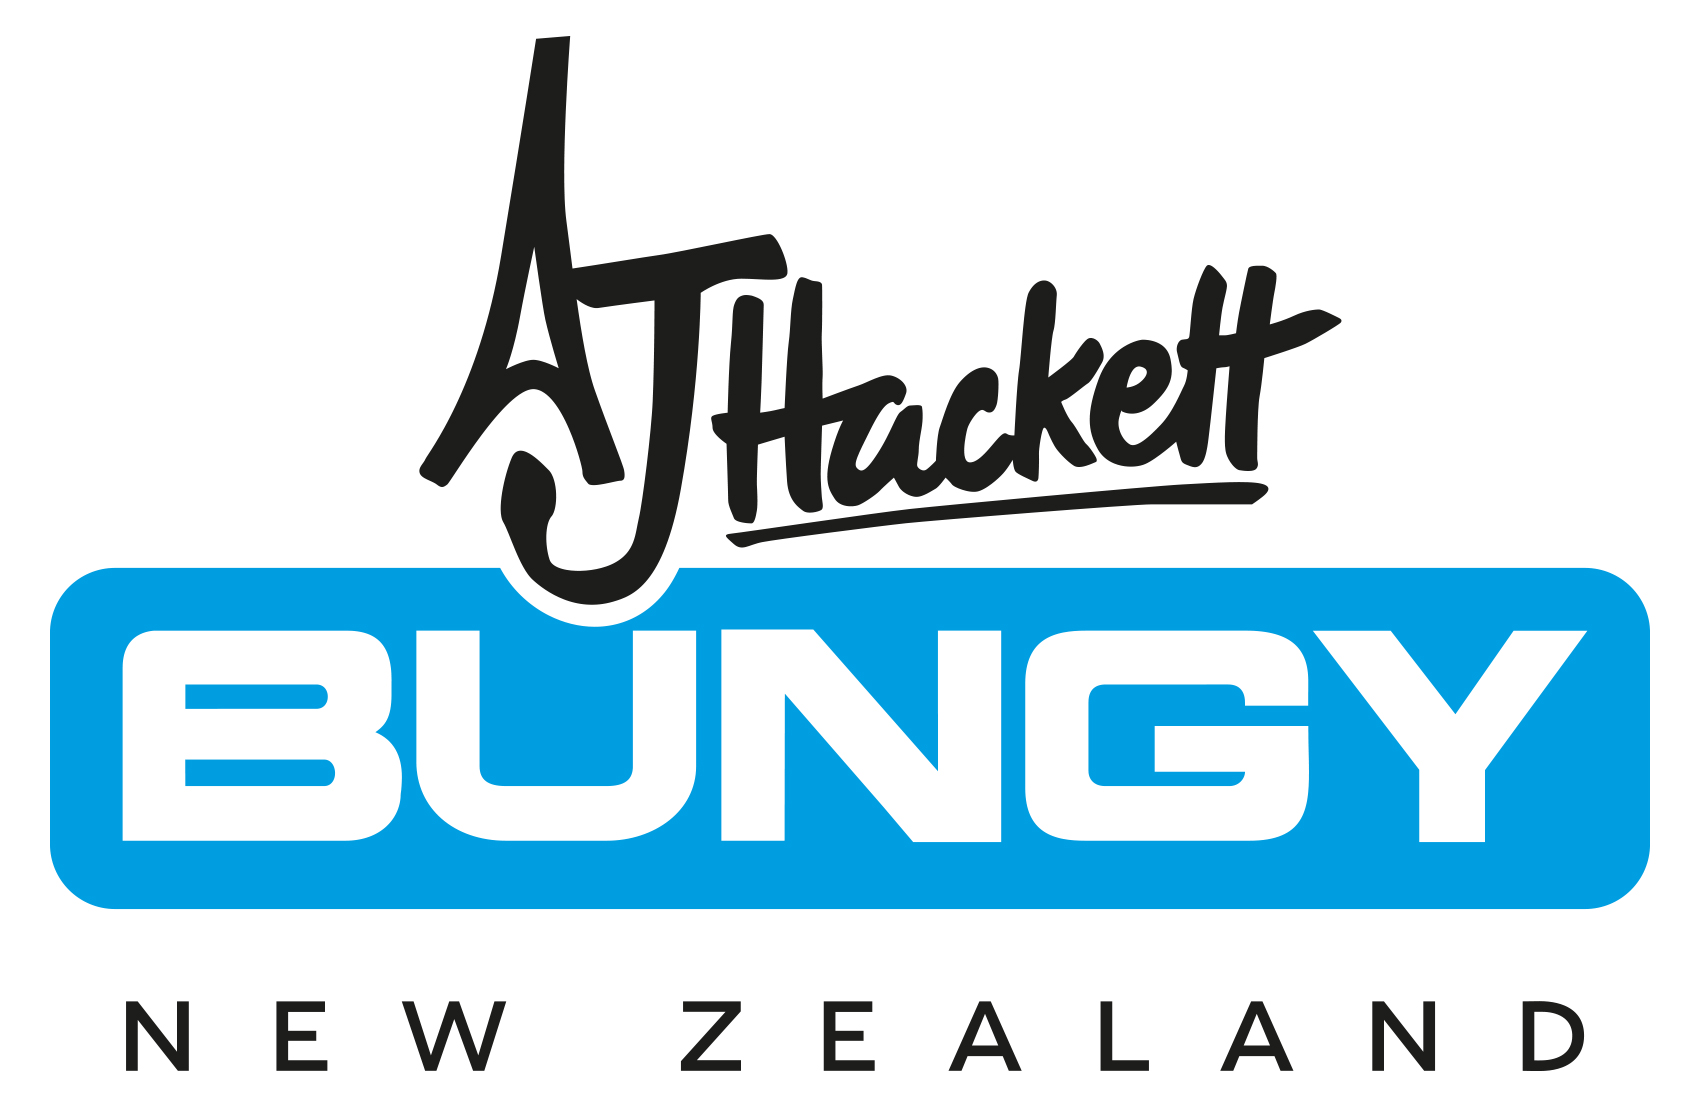 AJHackett ColourLogo print